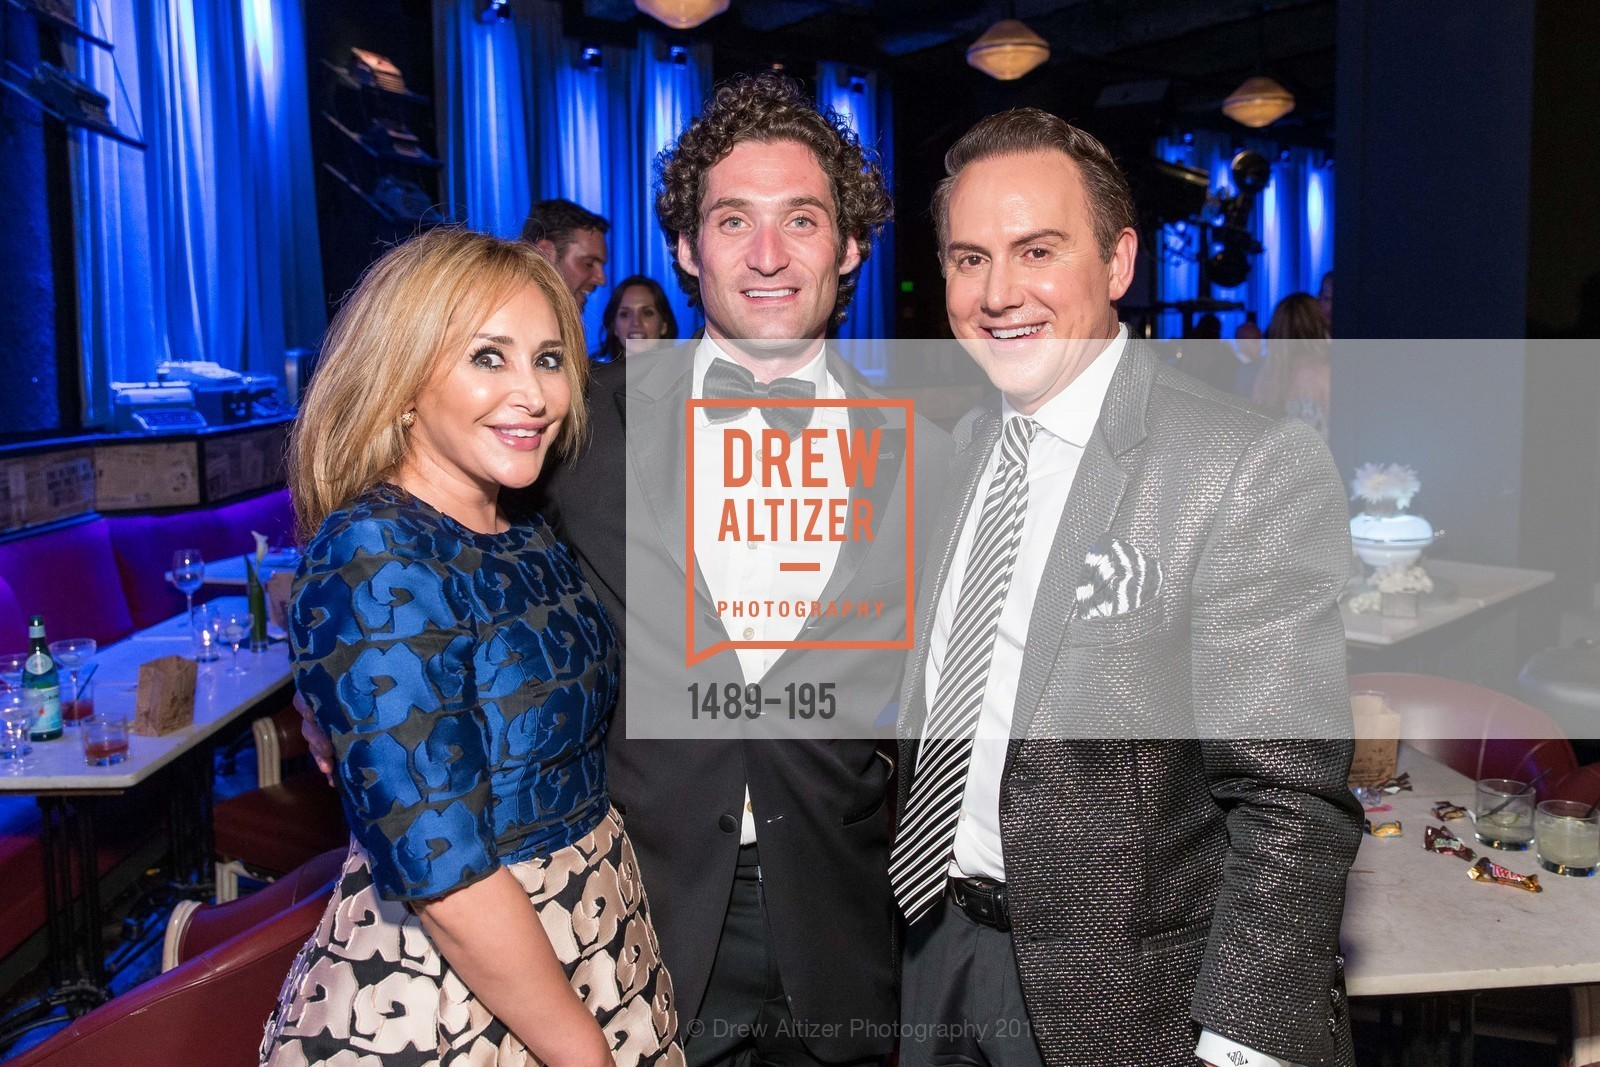 Brenda Zarate, Justin Fichelson, Joel Goodrich, Climb Real Estate and Sindeo Celebrate the Launch of Million Dollar Listing San Francisco, Local Edition San Francisco. 691 Market St, July 8th, 2015,Drew Altizer, Drew Altizer Photography, full-service agency, private events, San Francisco photographer, photographer california